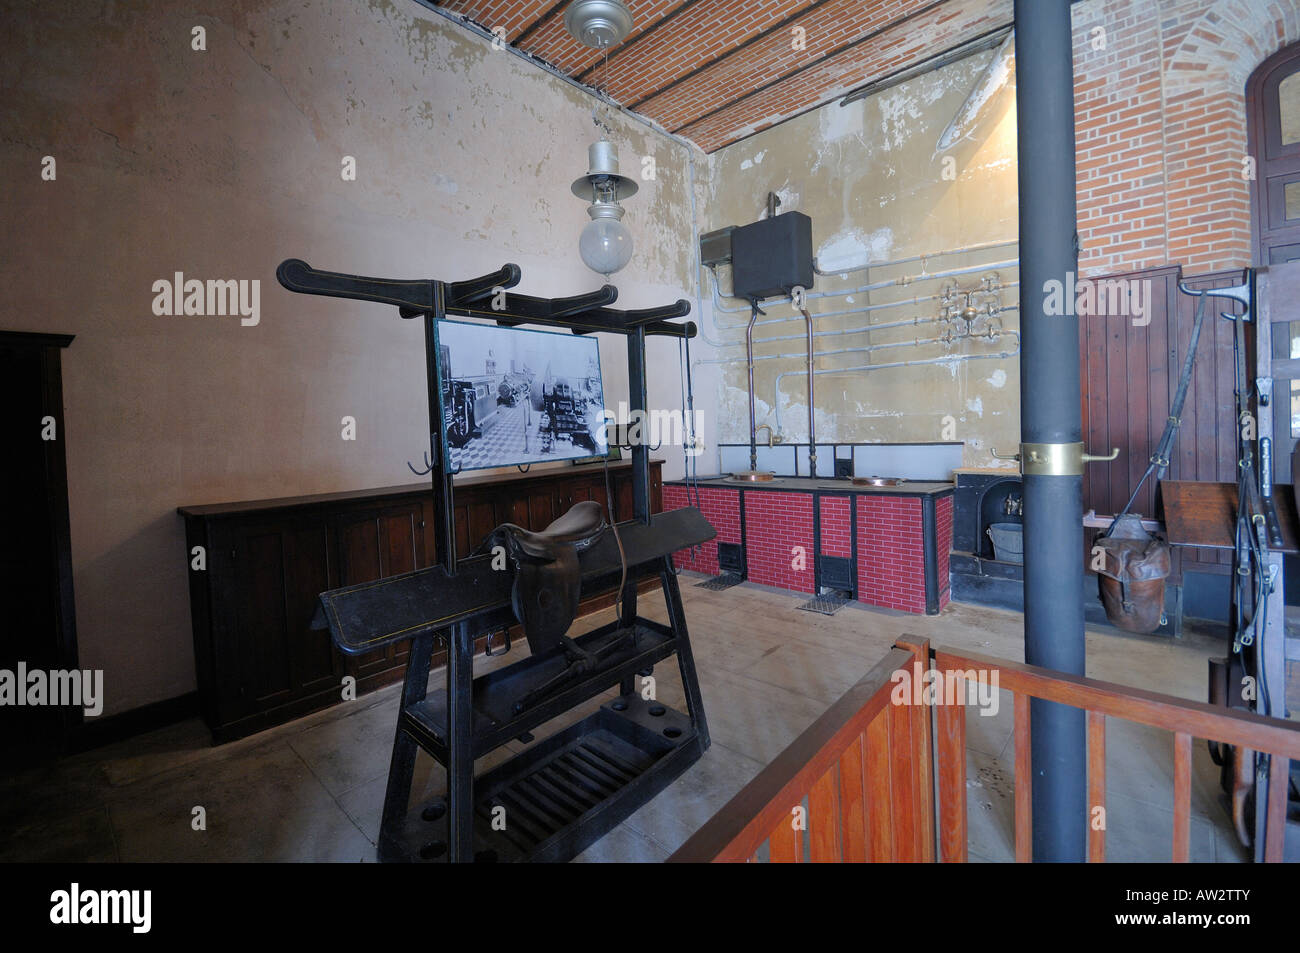 Saddle Room Stock Photos  Saddle Room Stock Images  Alamy